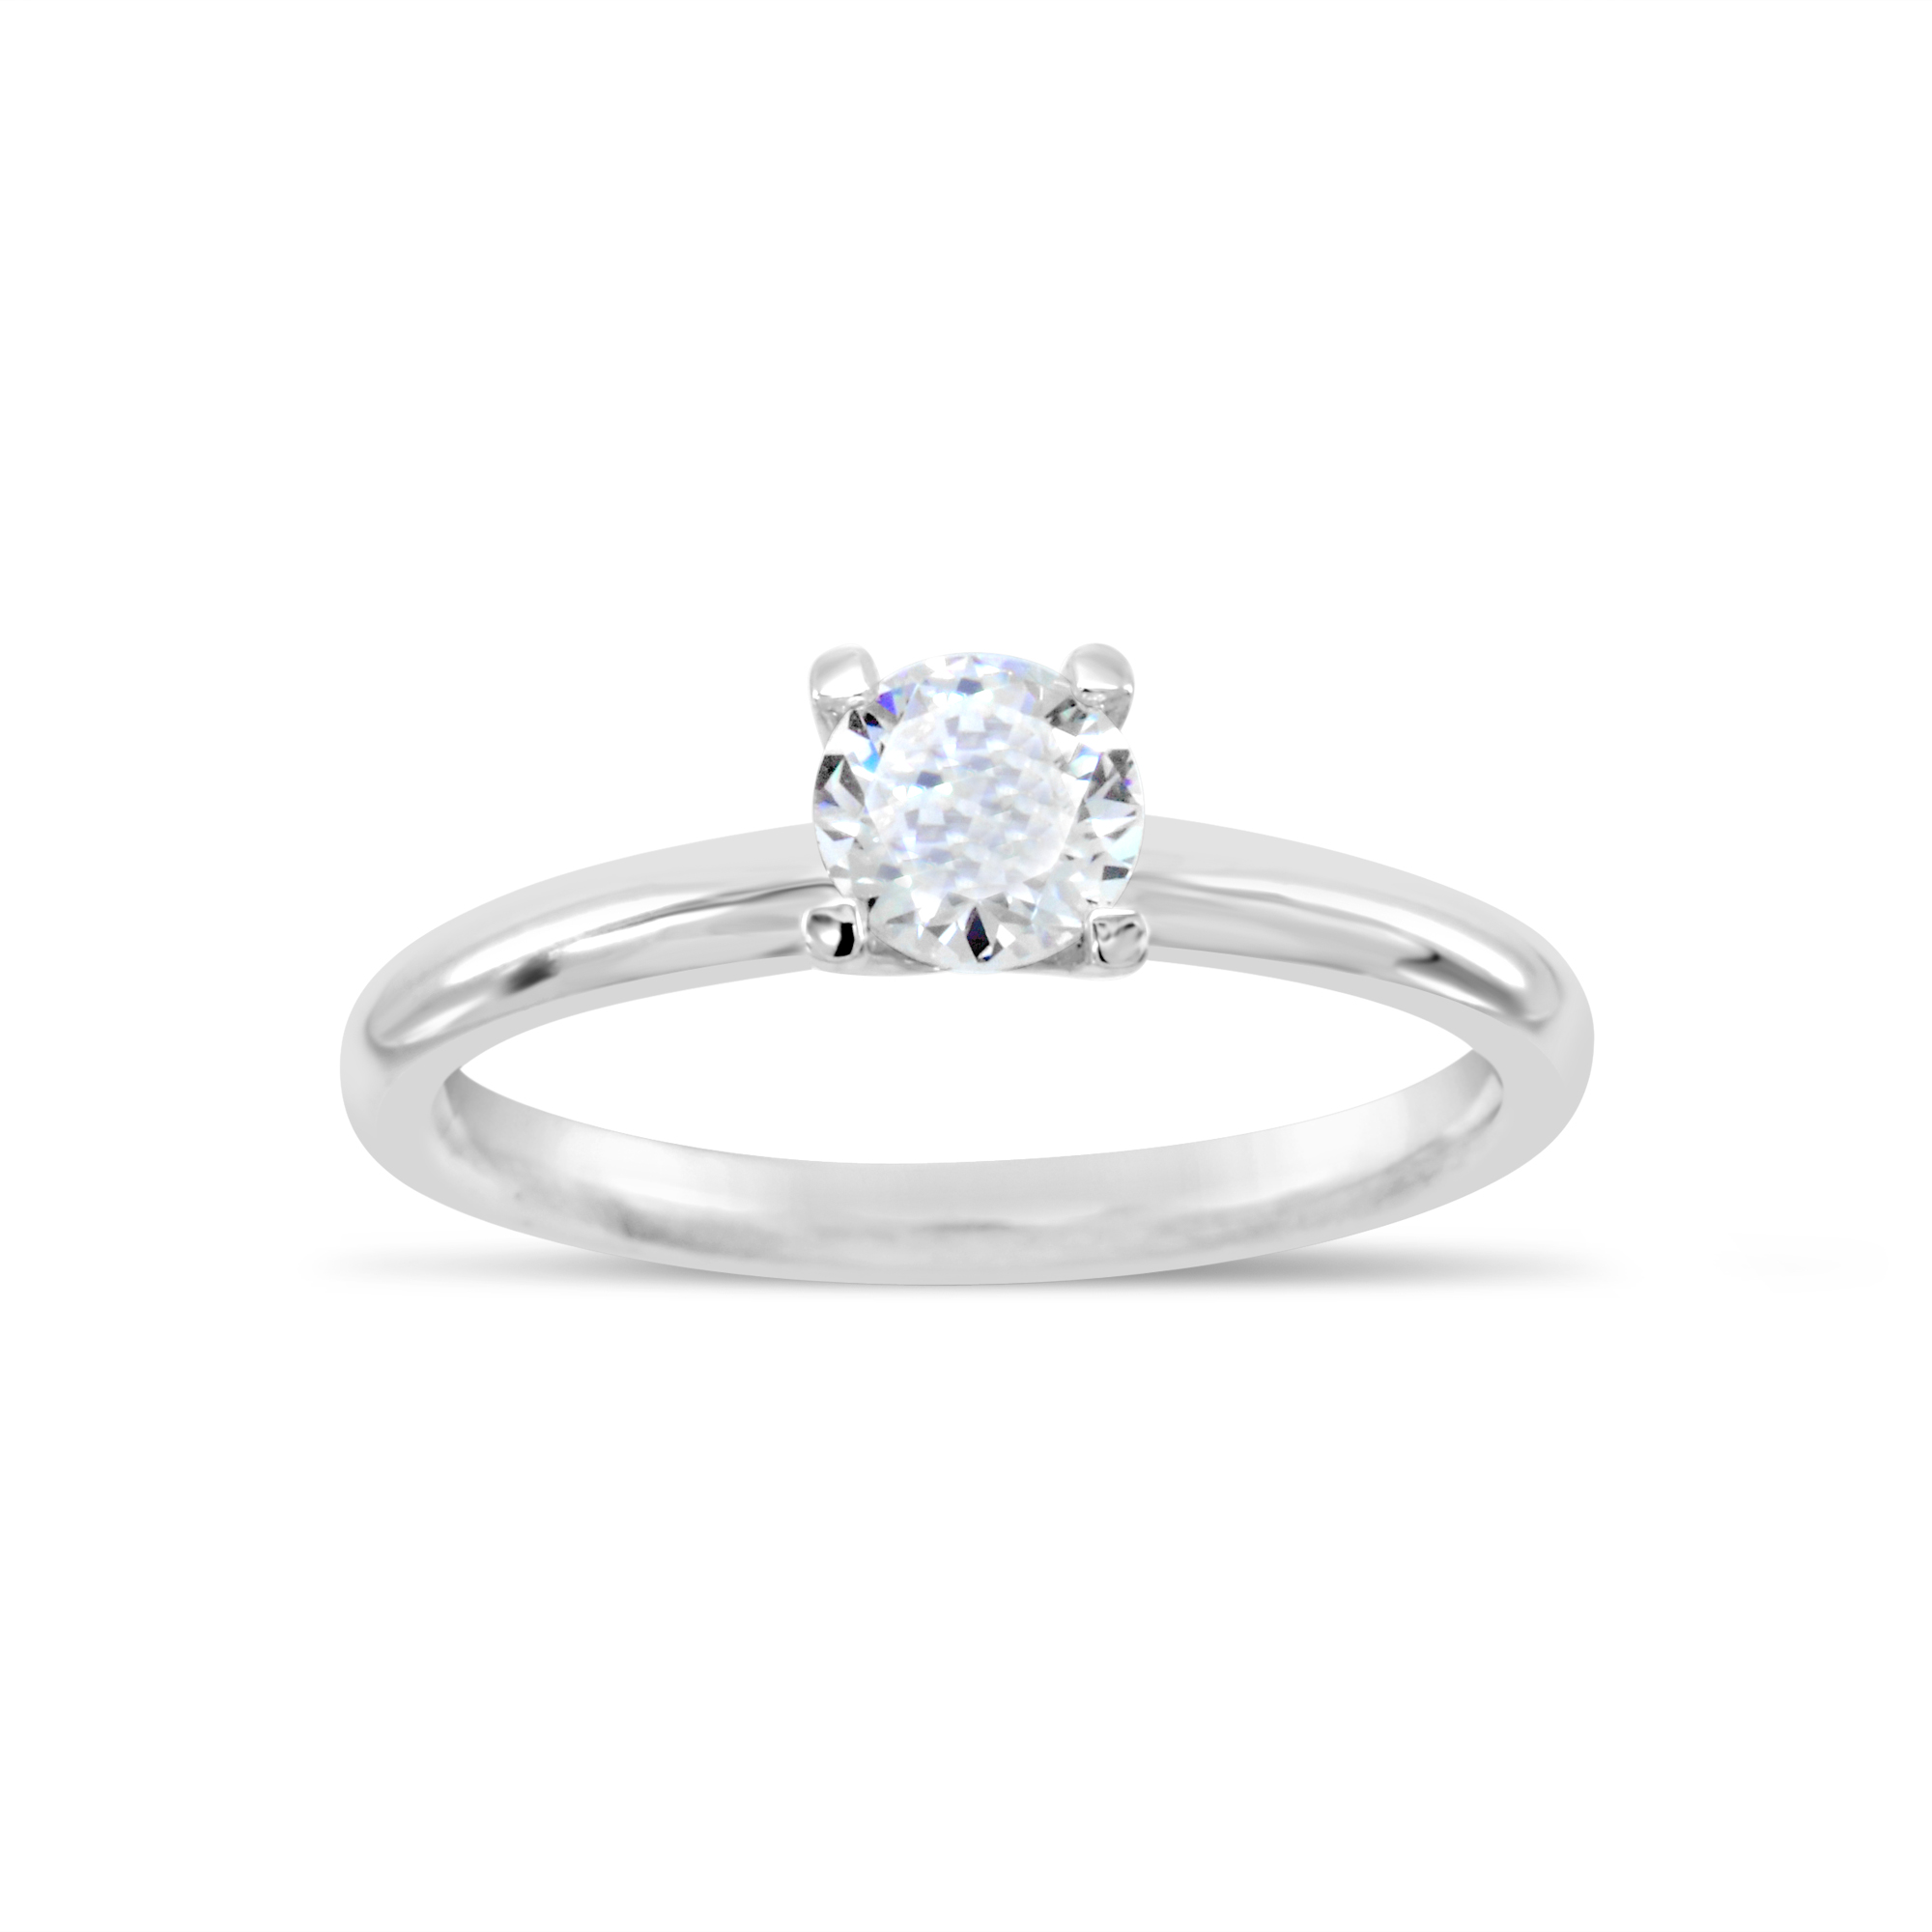 pear engagement graff ring collections stones round a brilliant cut set diamond with shape shoulder promise setting